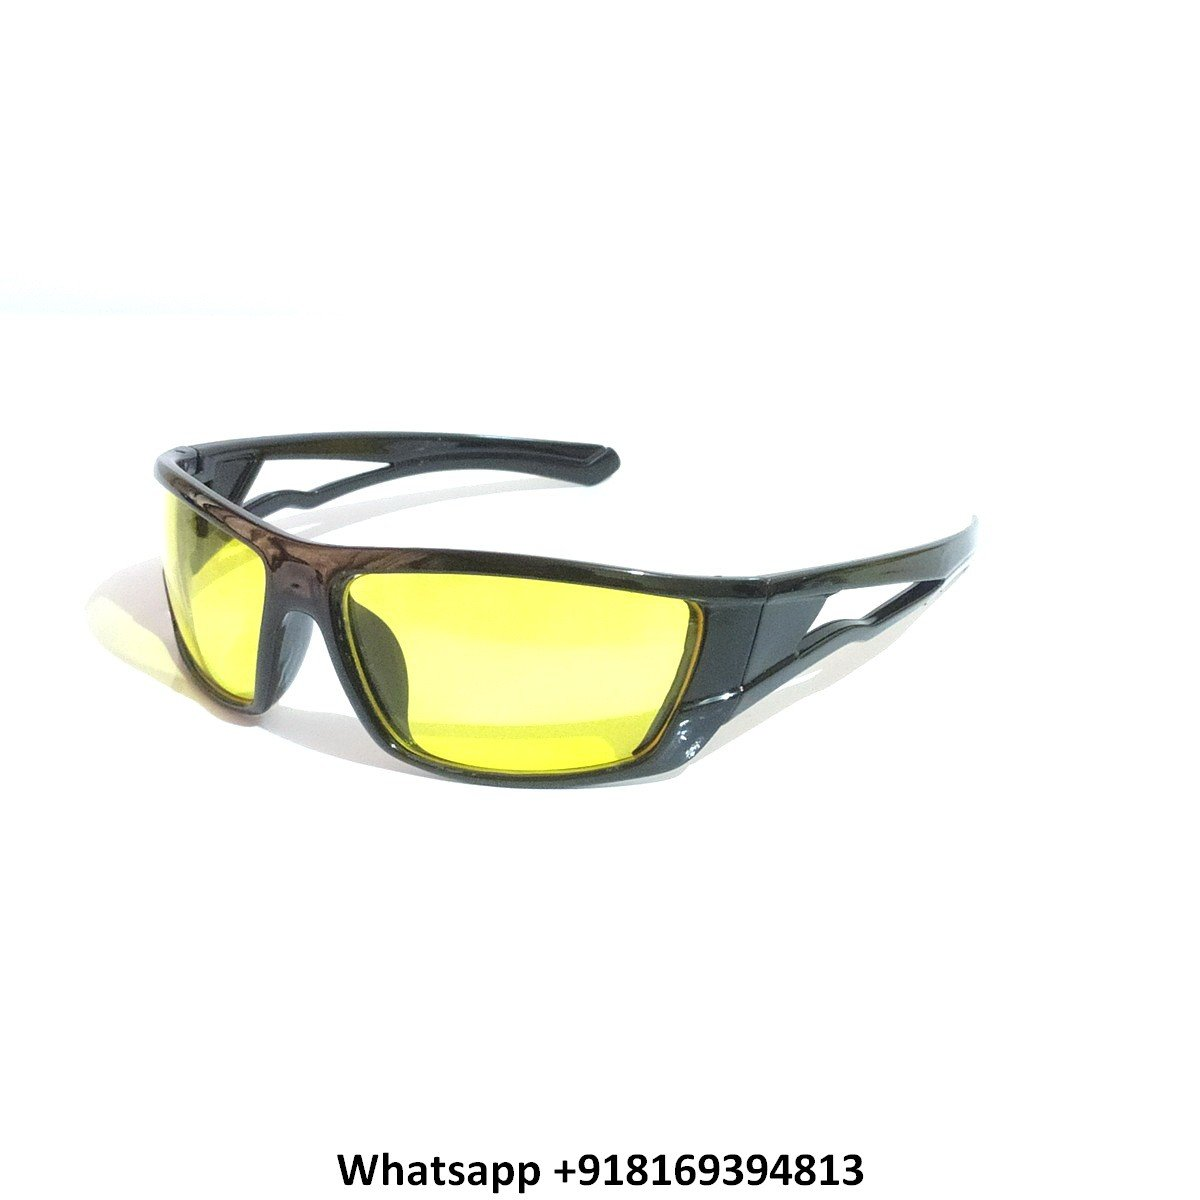 Night Driving Glasses for Men and Women Sunglasses with HD Yellow Lens M08